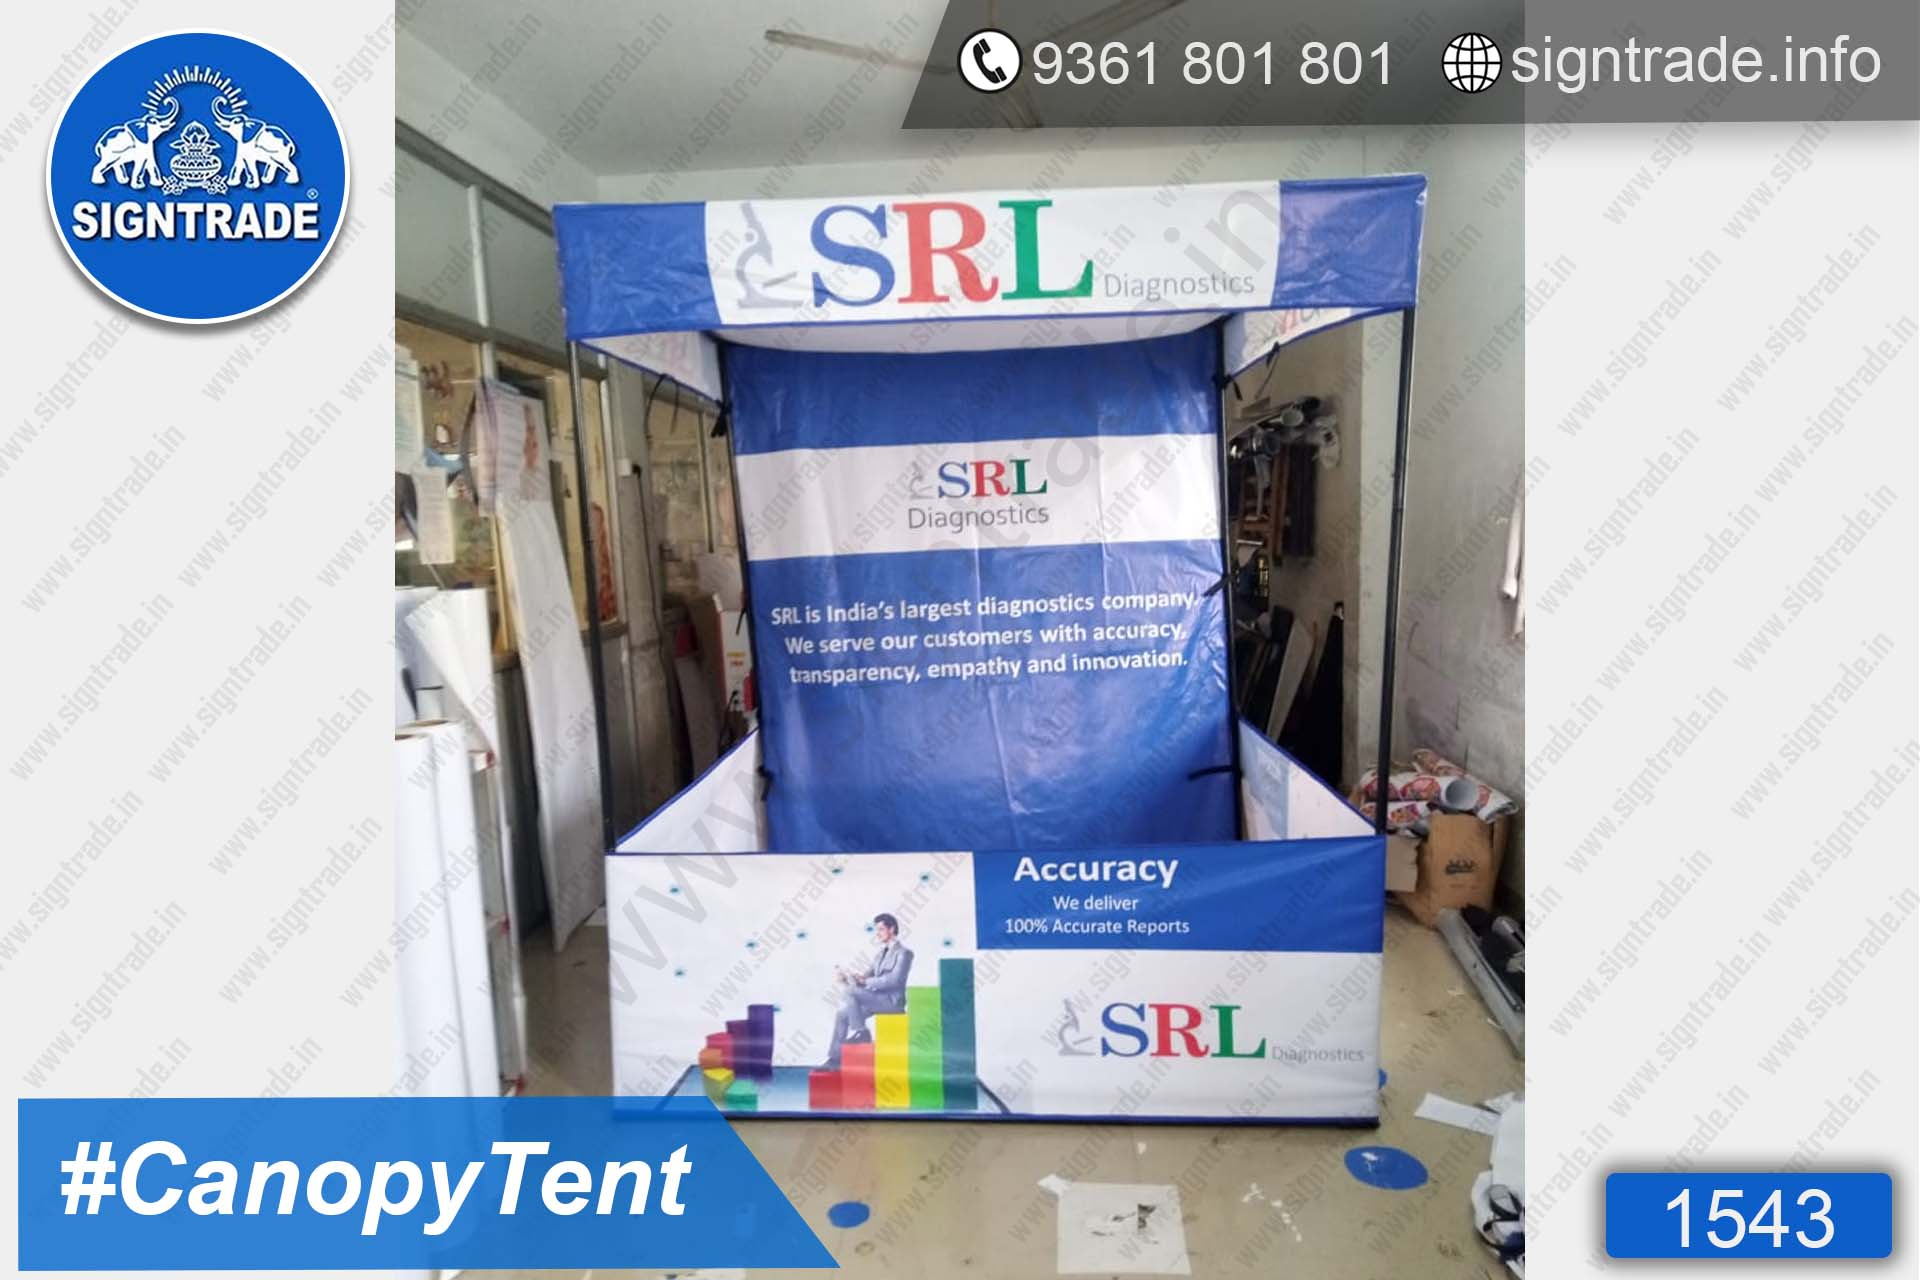 SRL Diagnostics - SIGNTRADE - Canopy Tent Manufactures in Chennai